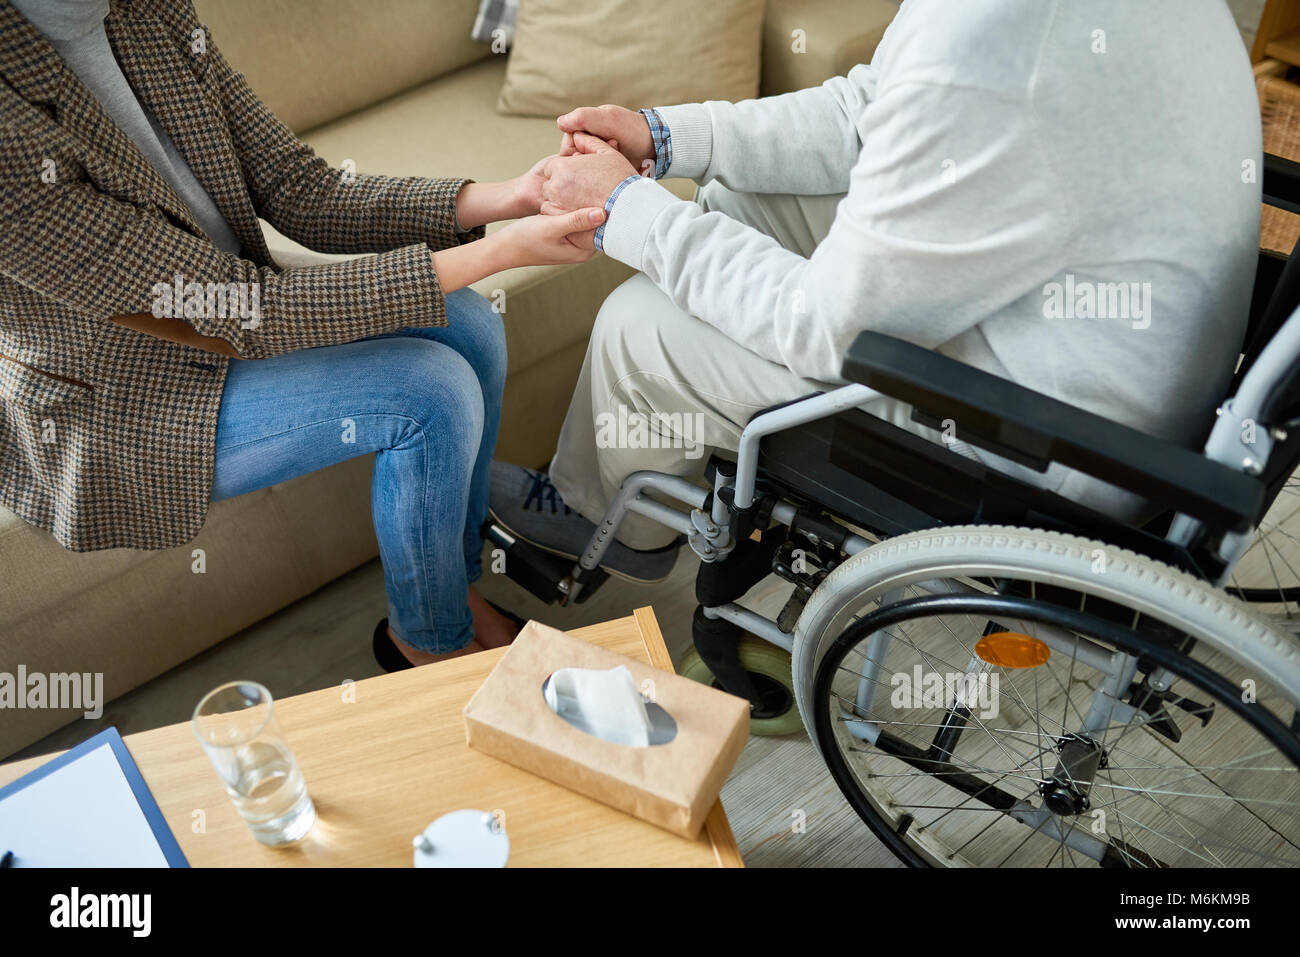 Supportive Therapy - Stock Image